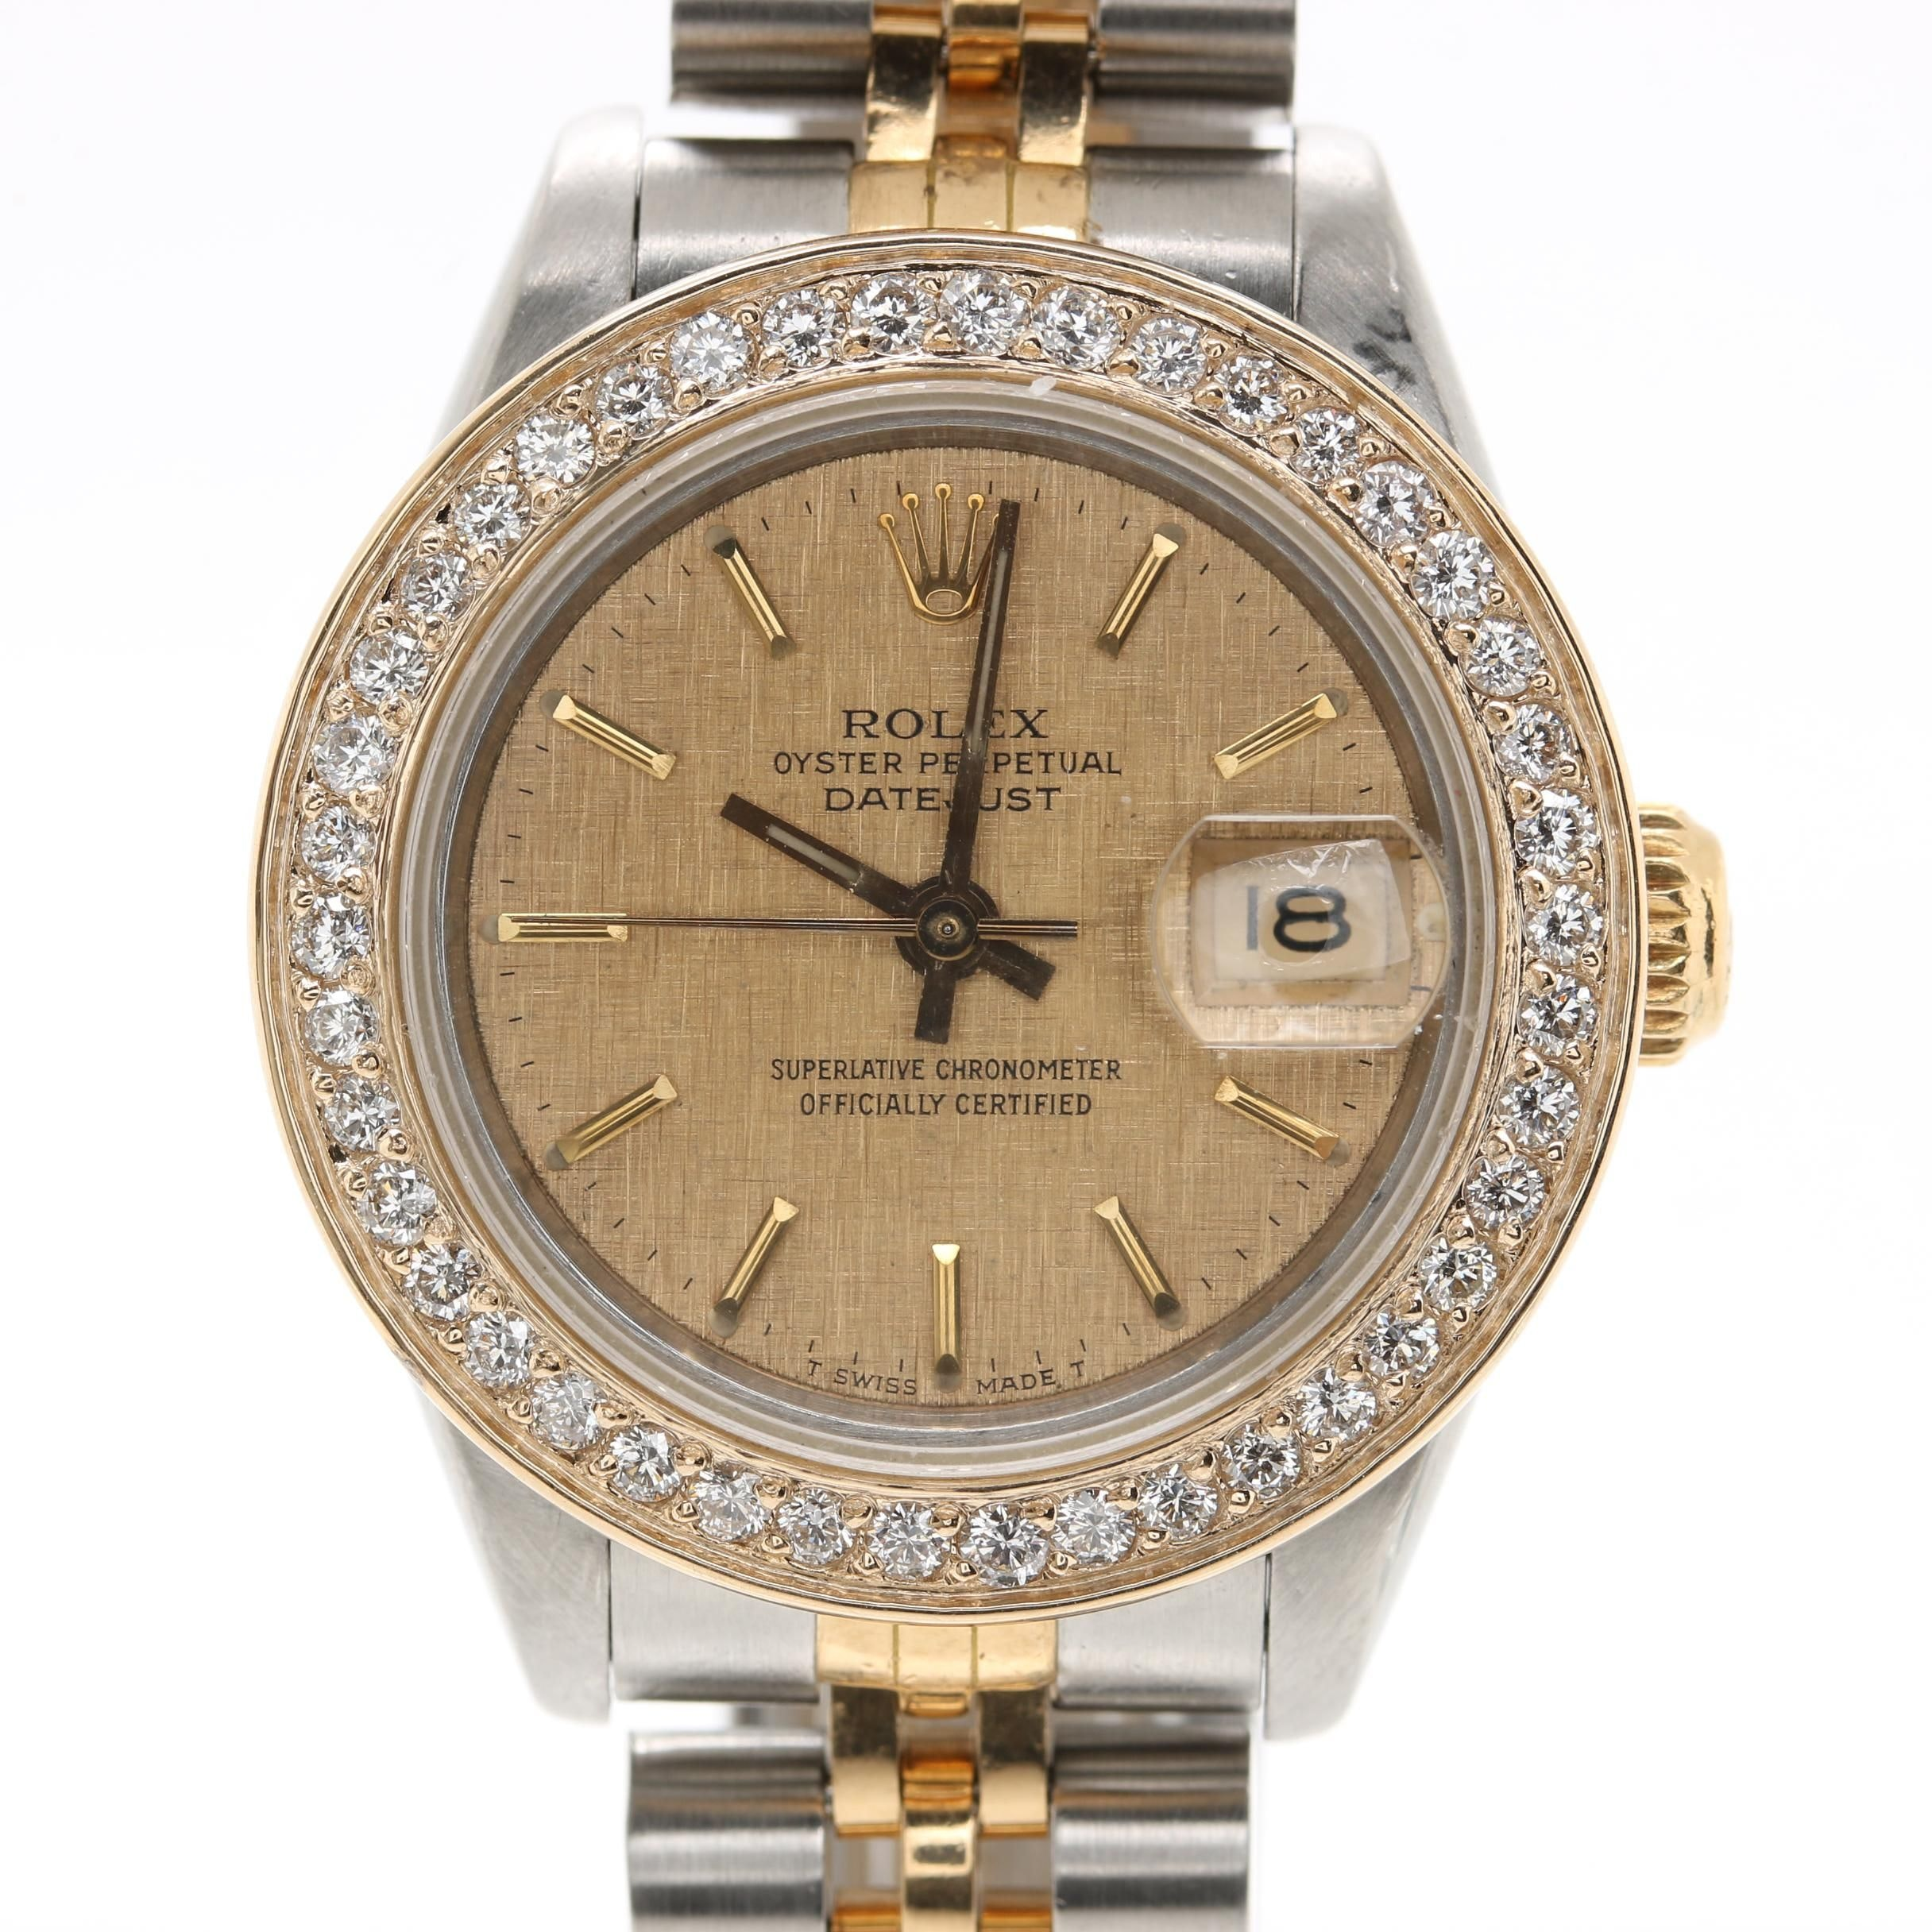 Circa 1987 Rolex Stainless Steel and 18K Yellow Gold Diamond Wristwatch